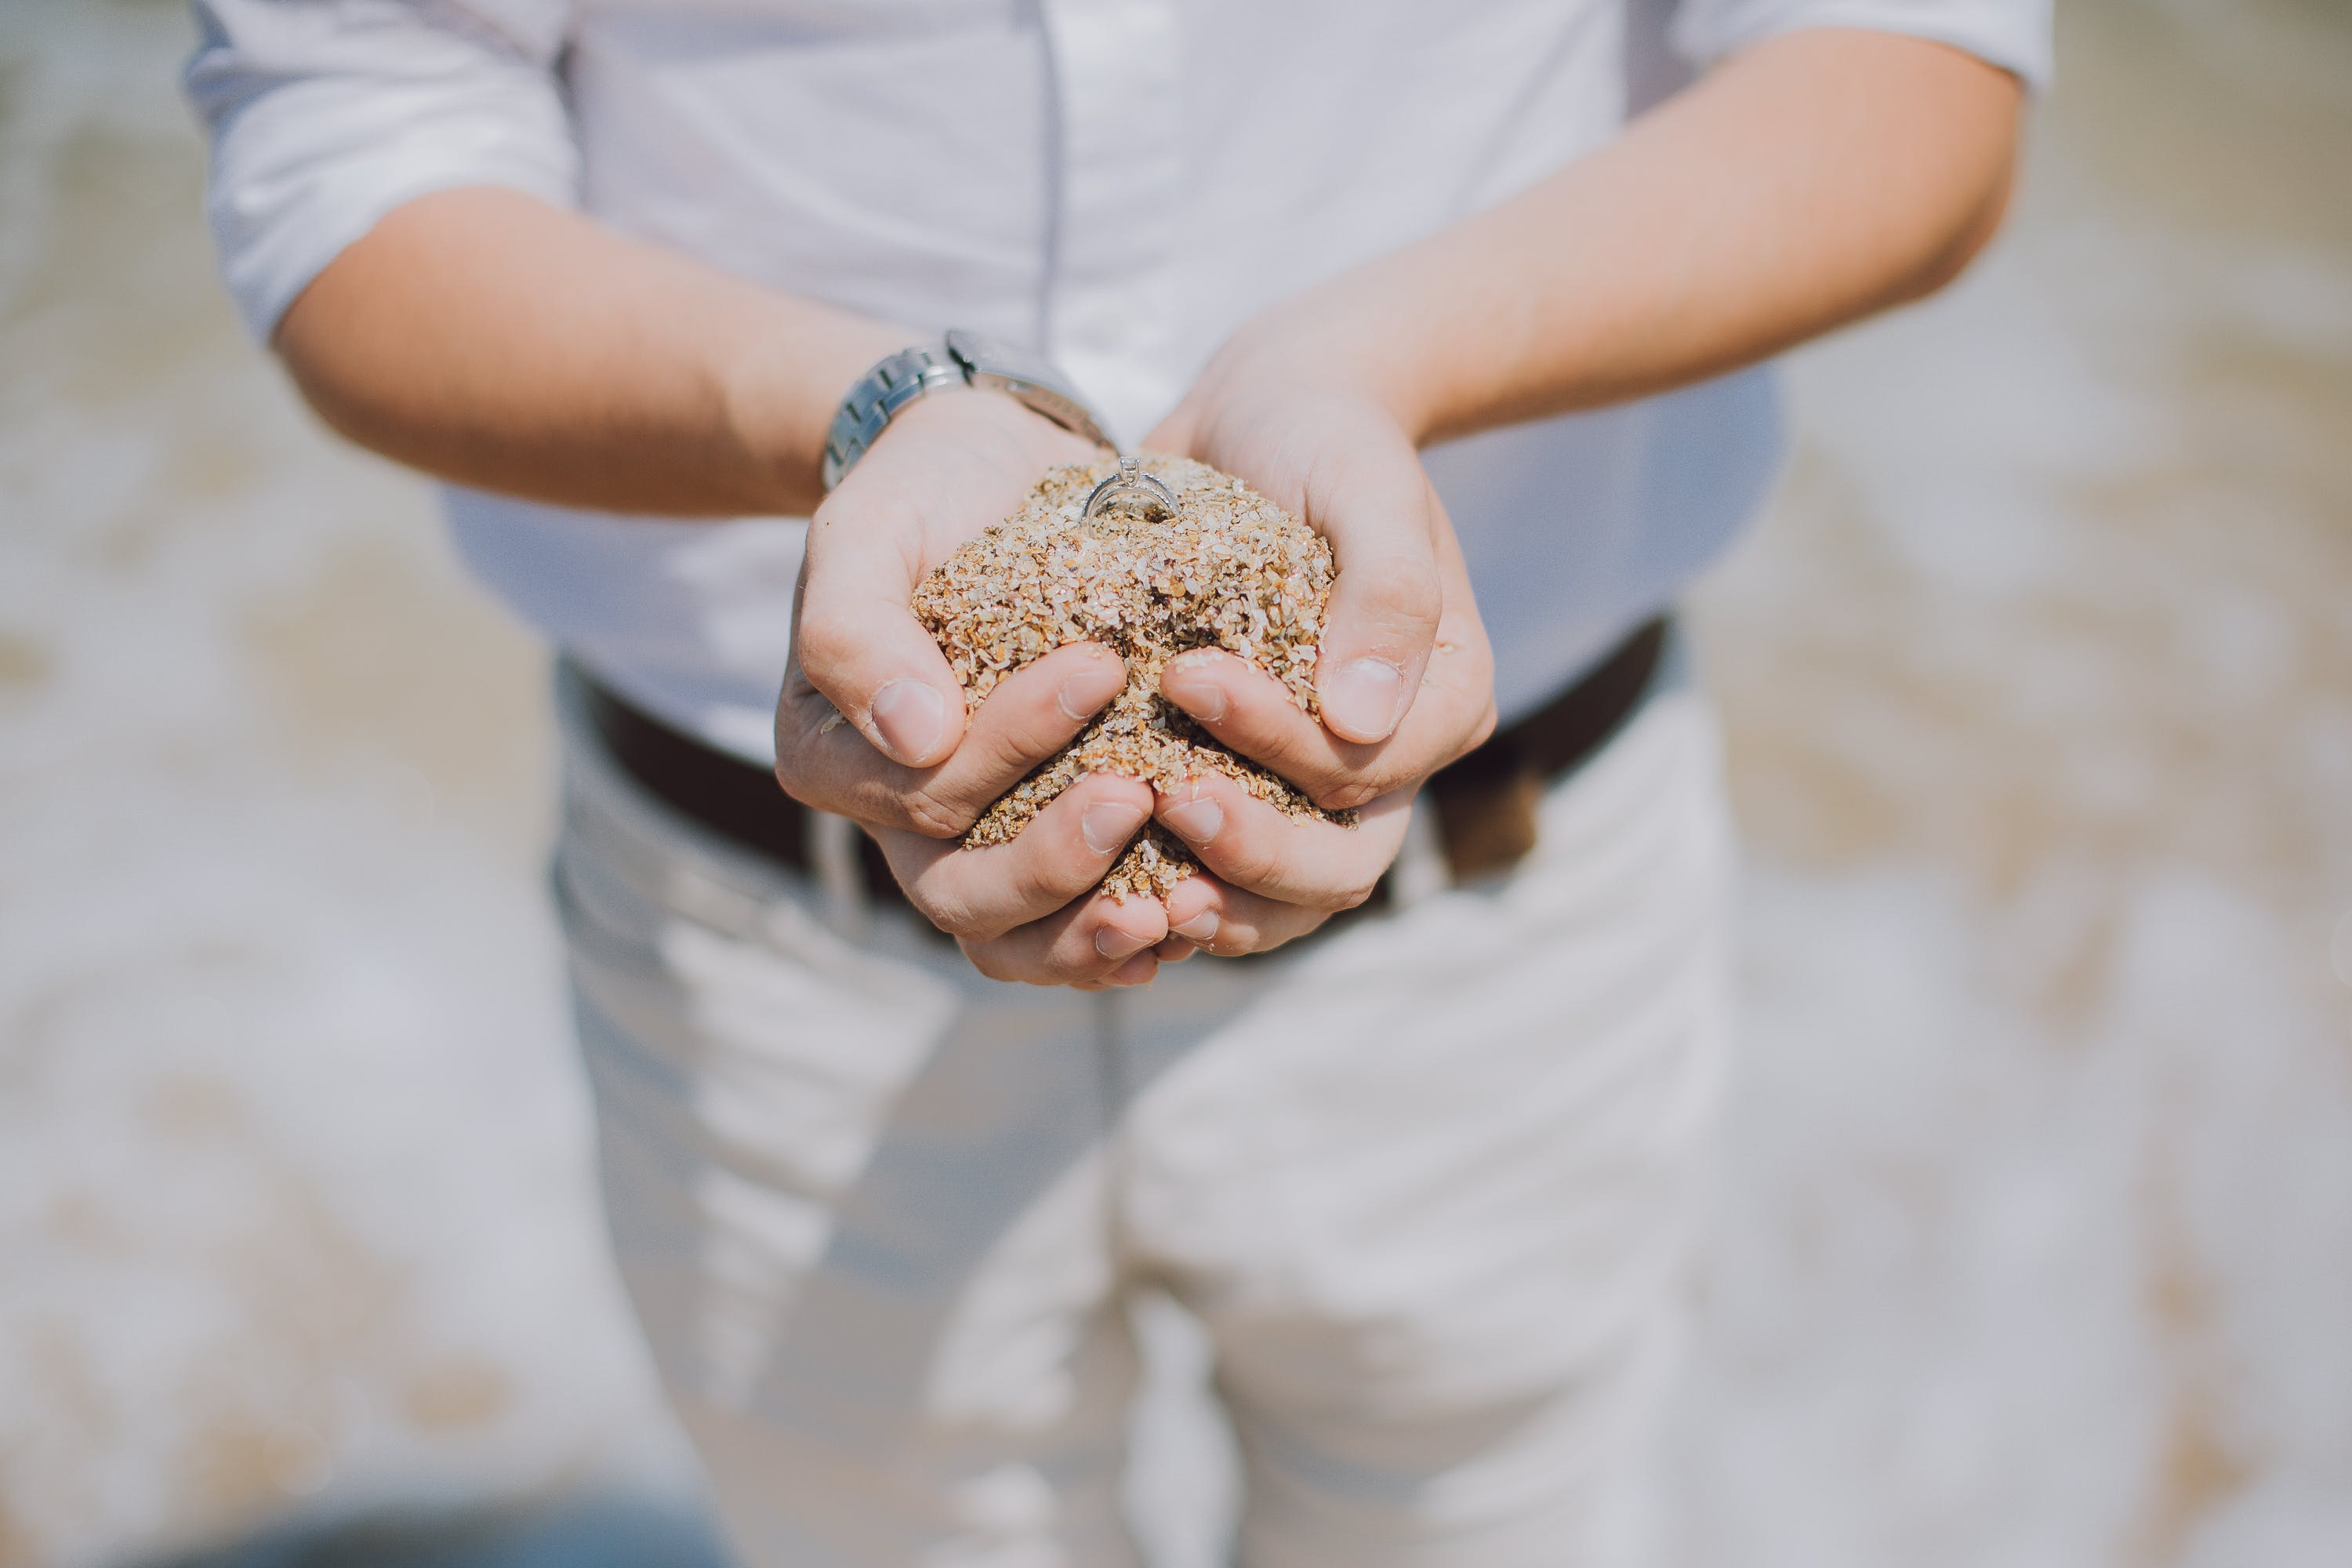 Shallow Focus Photography of Person Holding Brown Sand